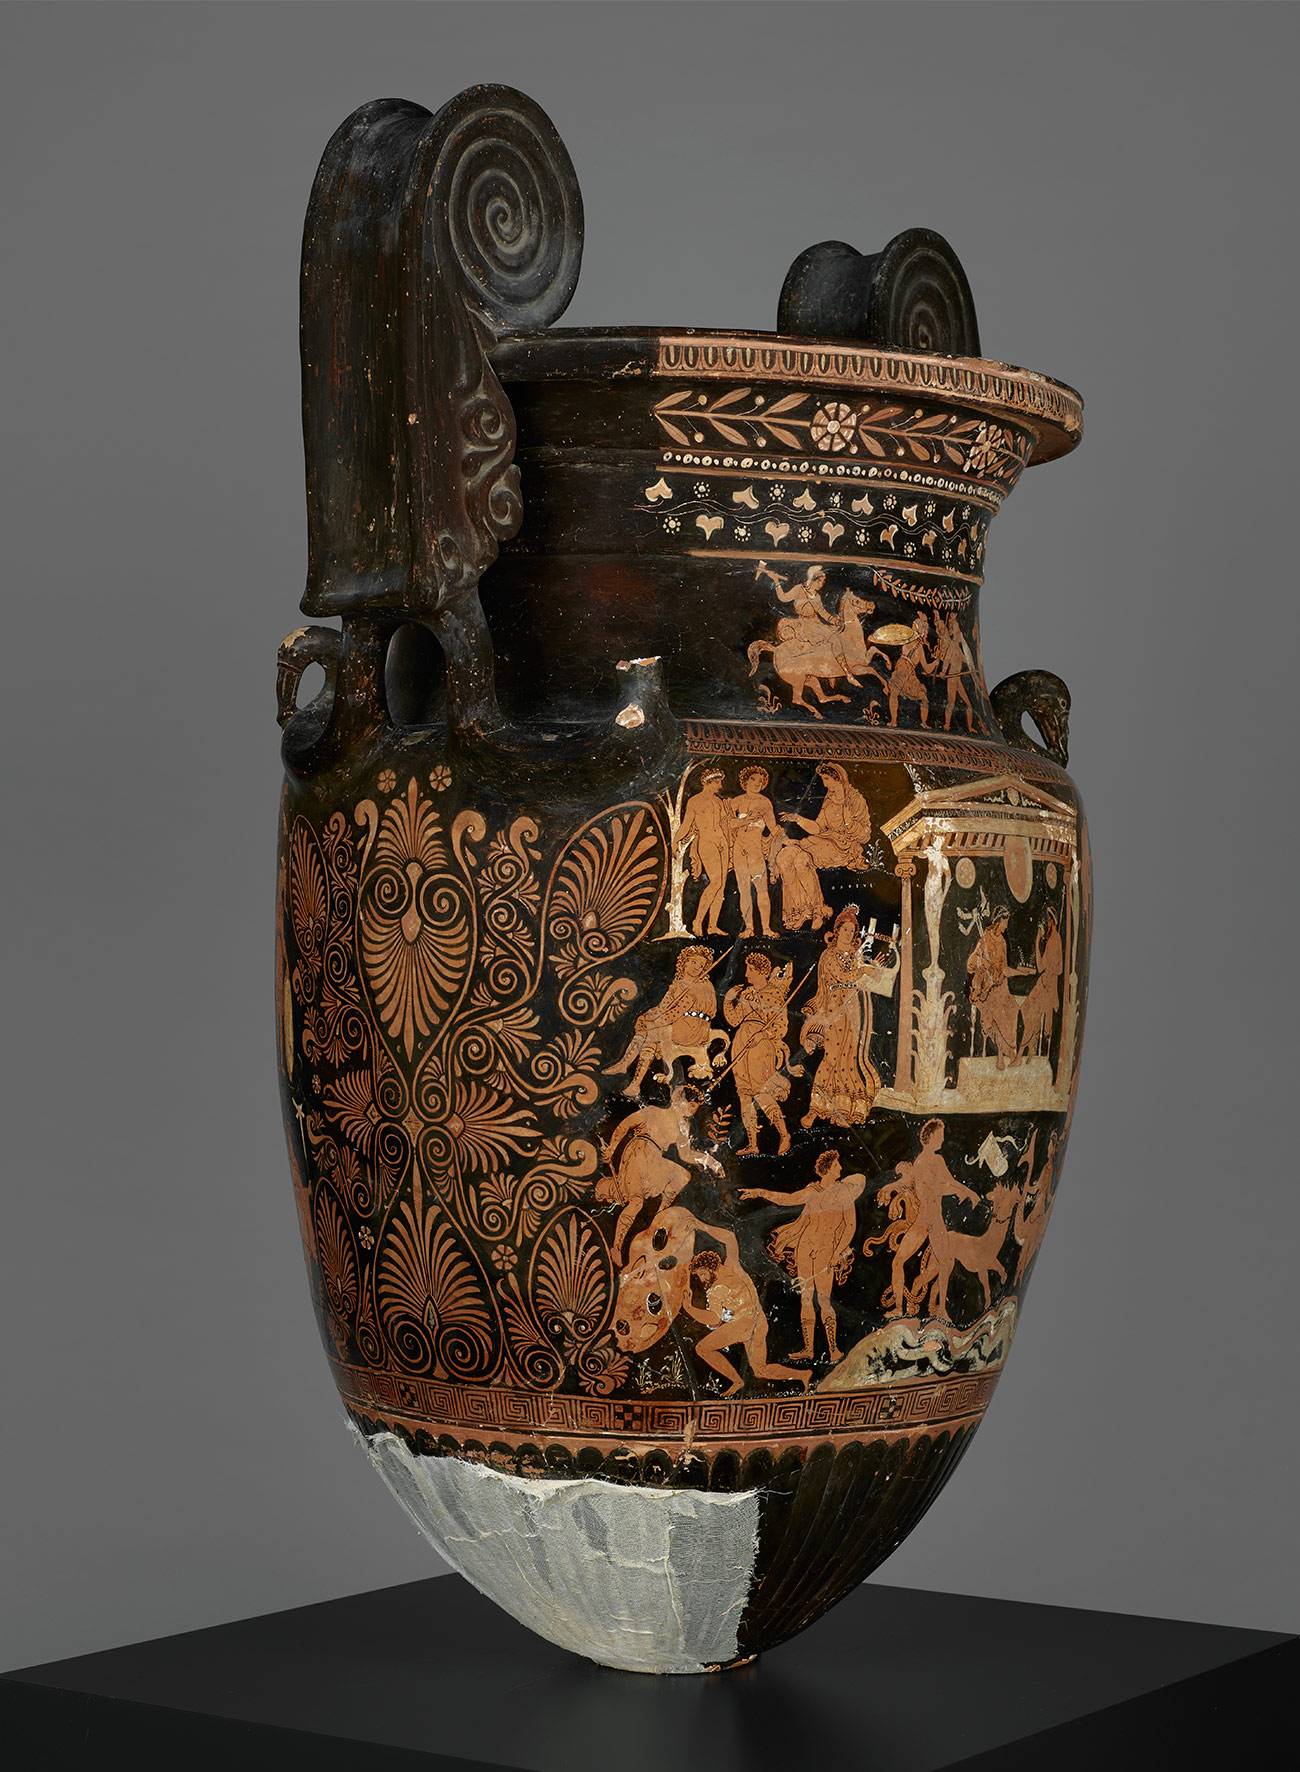 View of a large painted Greek vase with large handles showing scenes of the afterlife